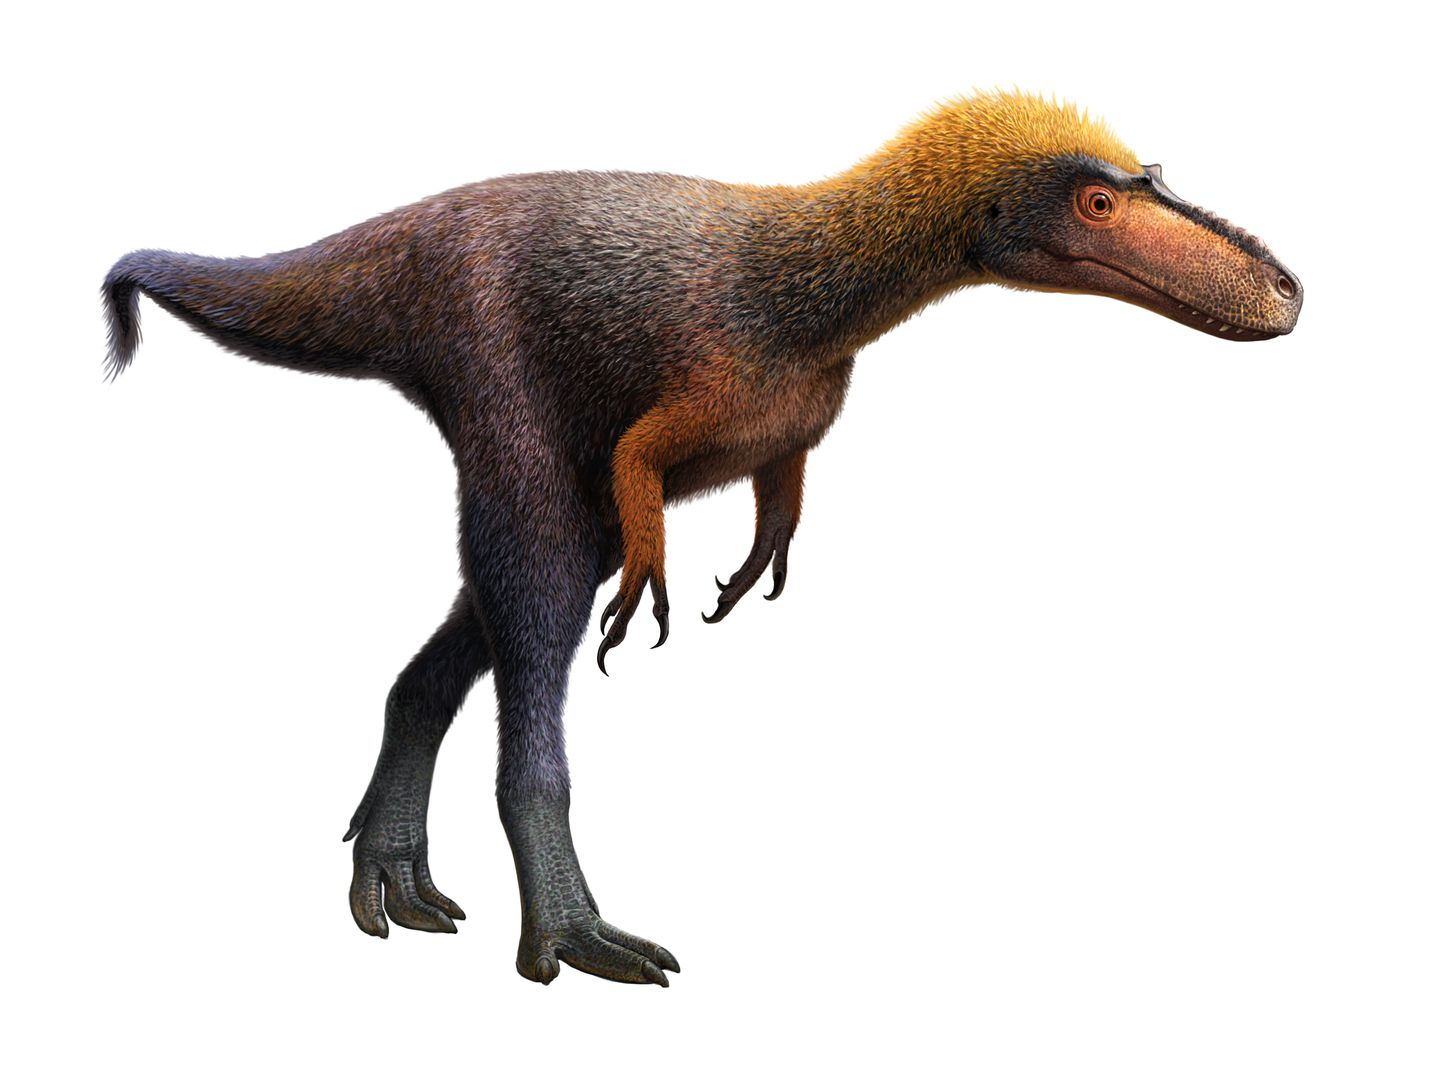 In the past, Relative of the Tyrannosaurus rex identified